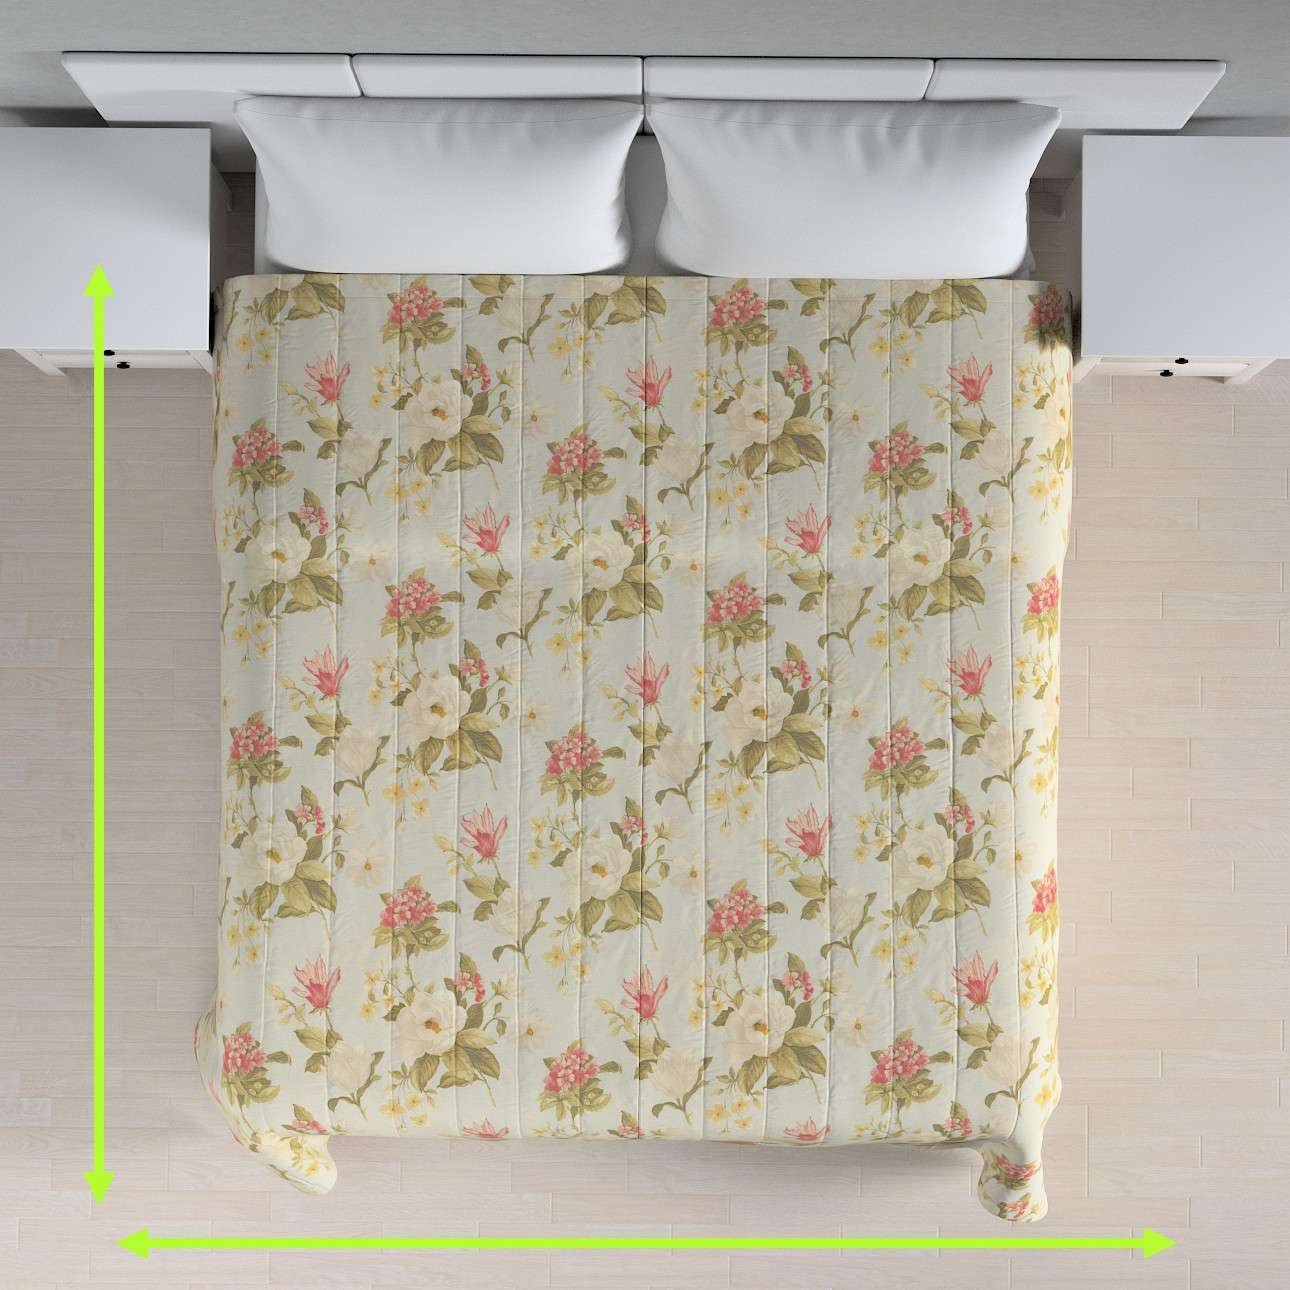 Quilted throw (vertical quilt pattern) in collection Londres, fabric: 123-65